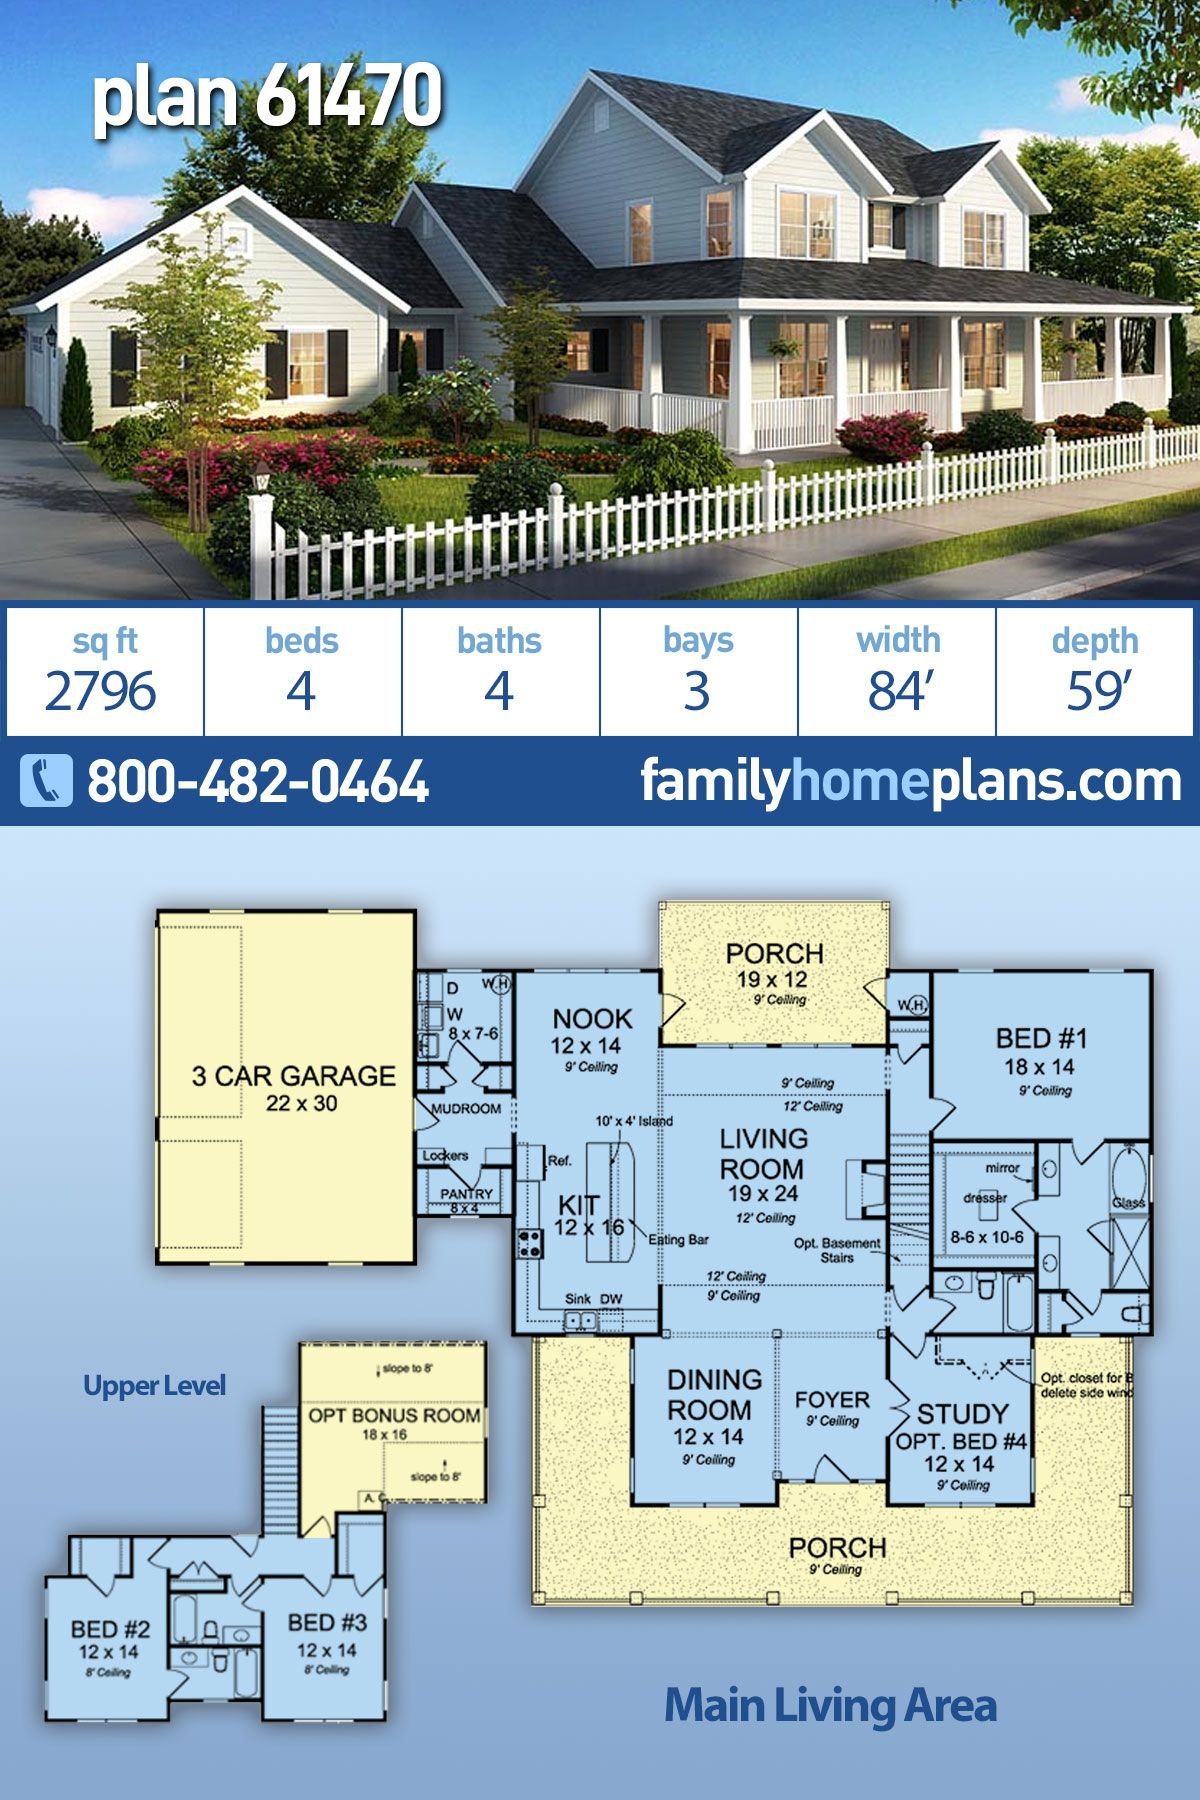 Southern Style House Plan 61470 With 4 Bed 4 Bath 3 Car Garage Family House Plans House Plans Porch Design